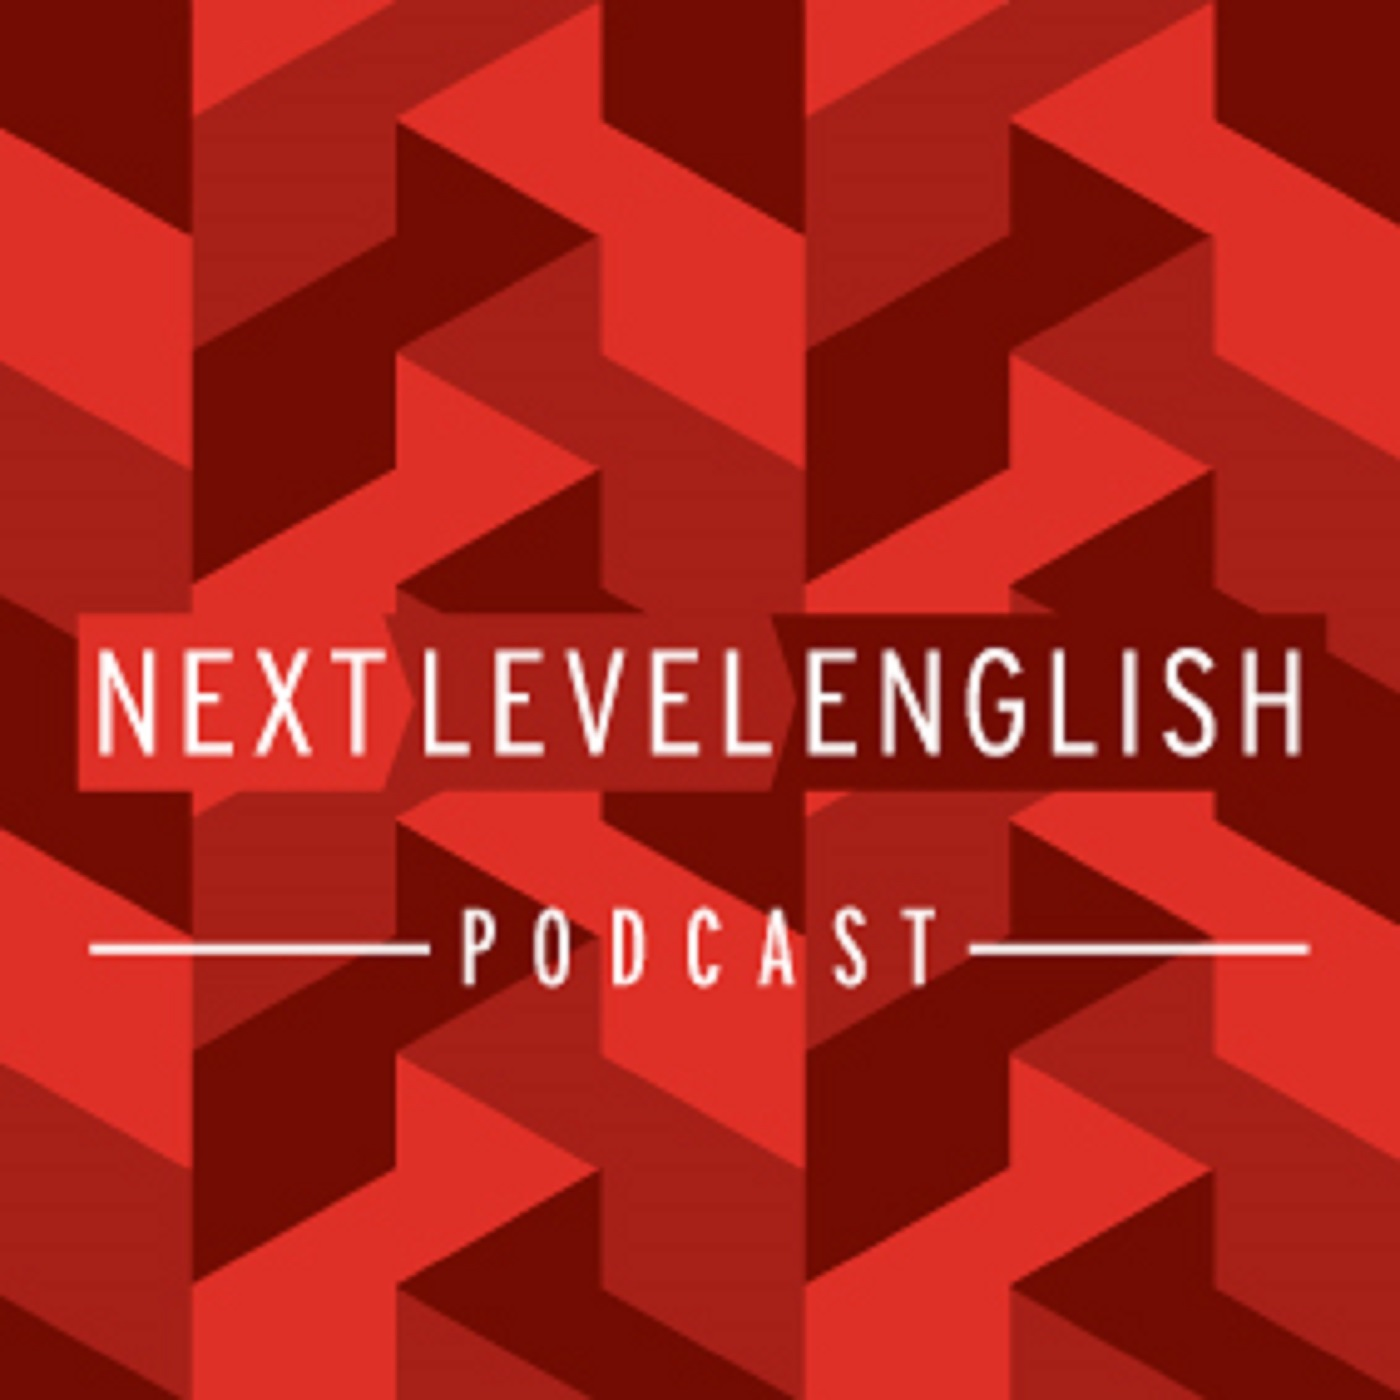 Next Level English Podcast